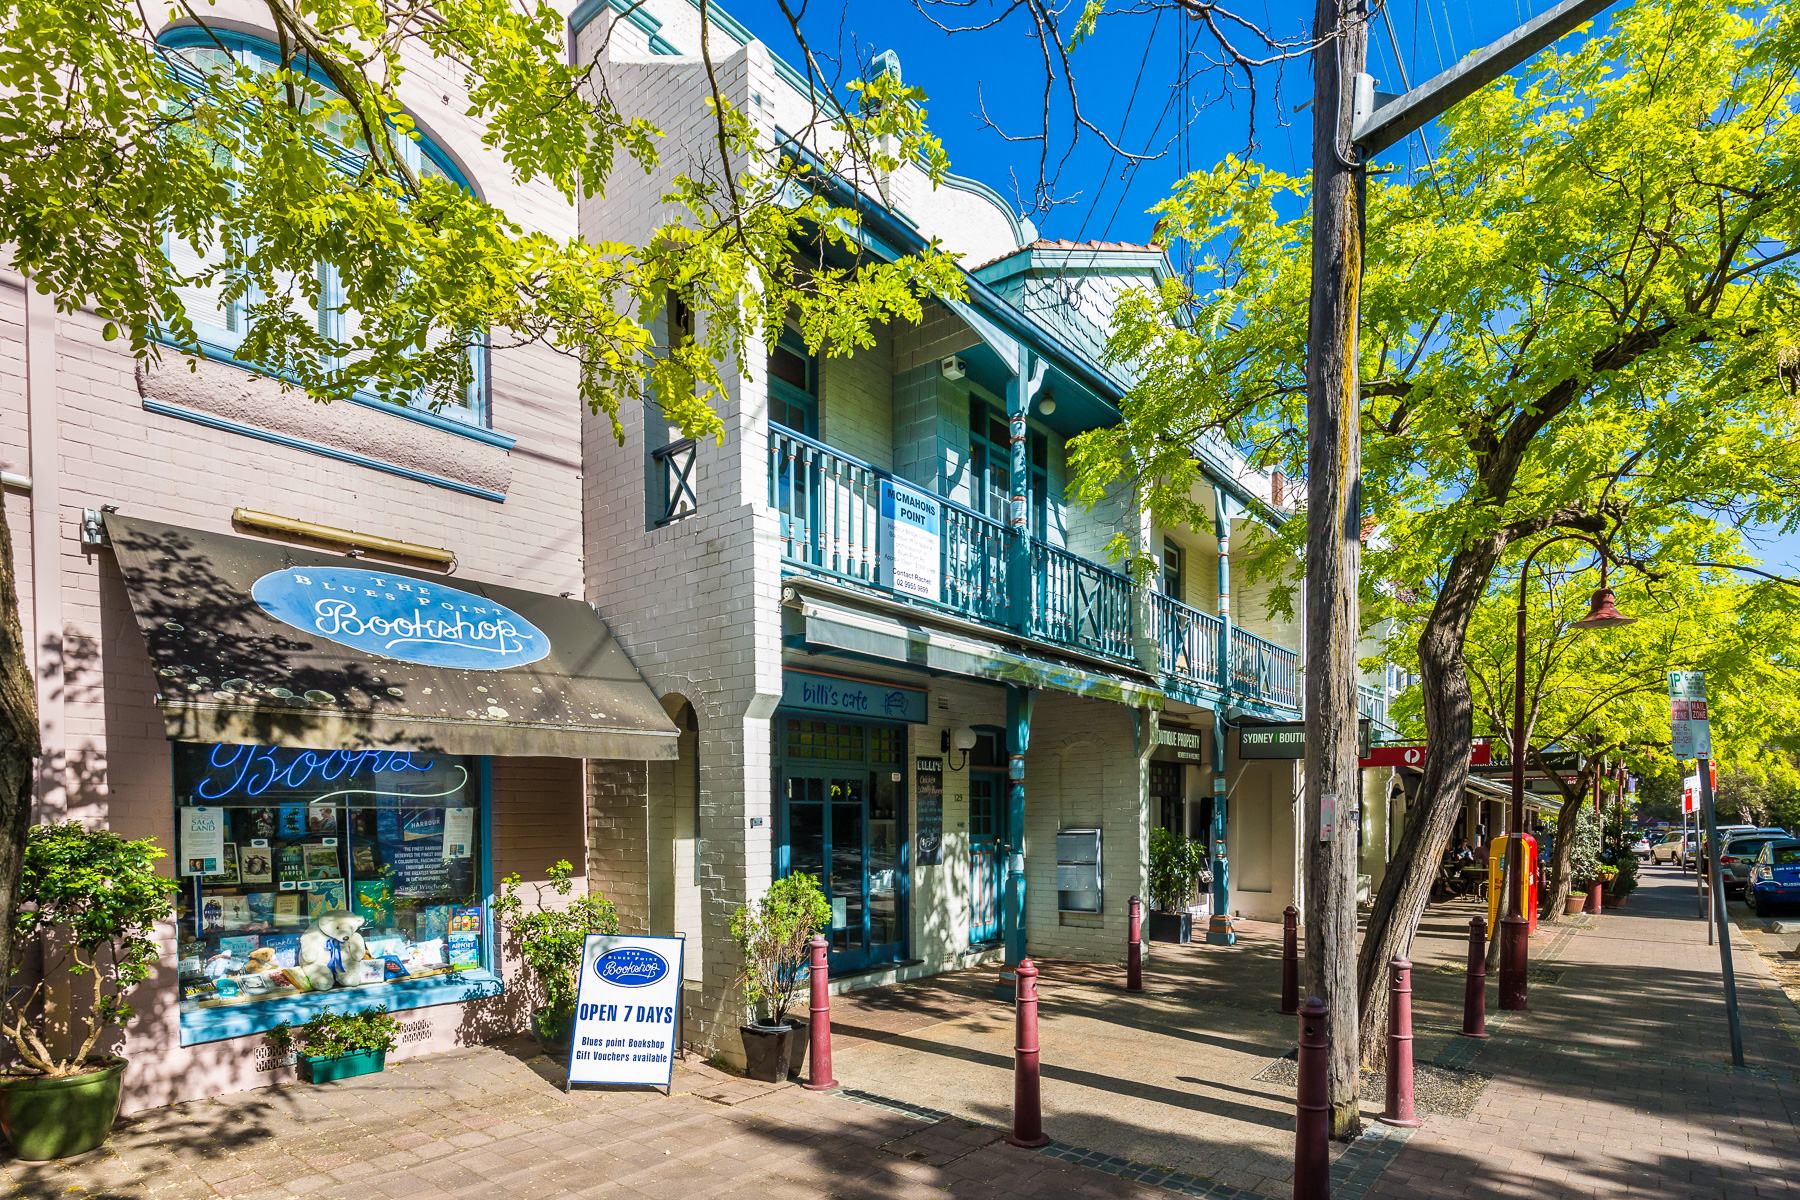 Book shop and cafes in McMahons Point Village - a 5 minute walk away.